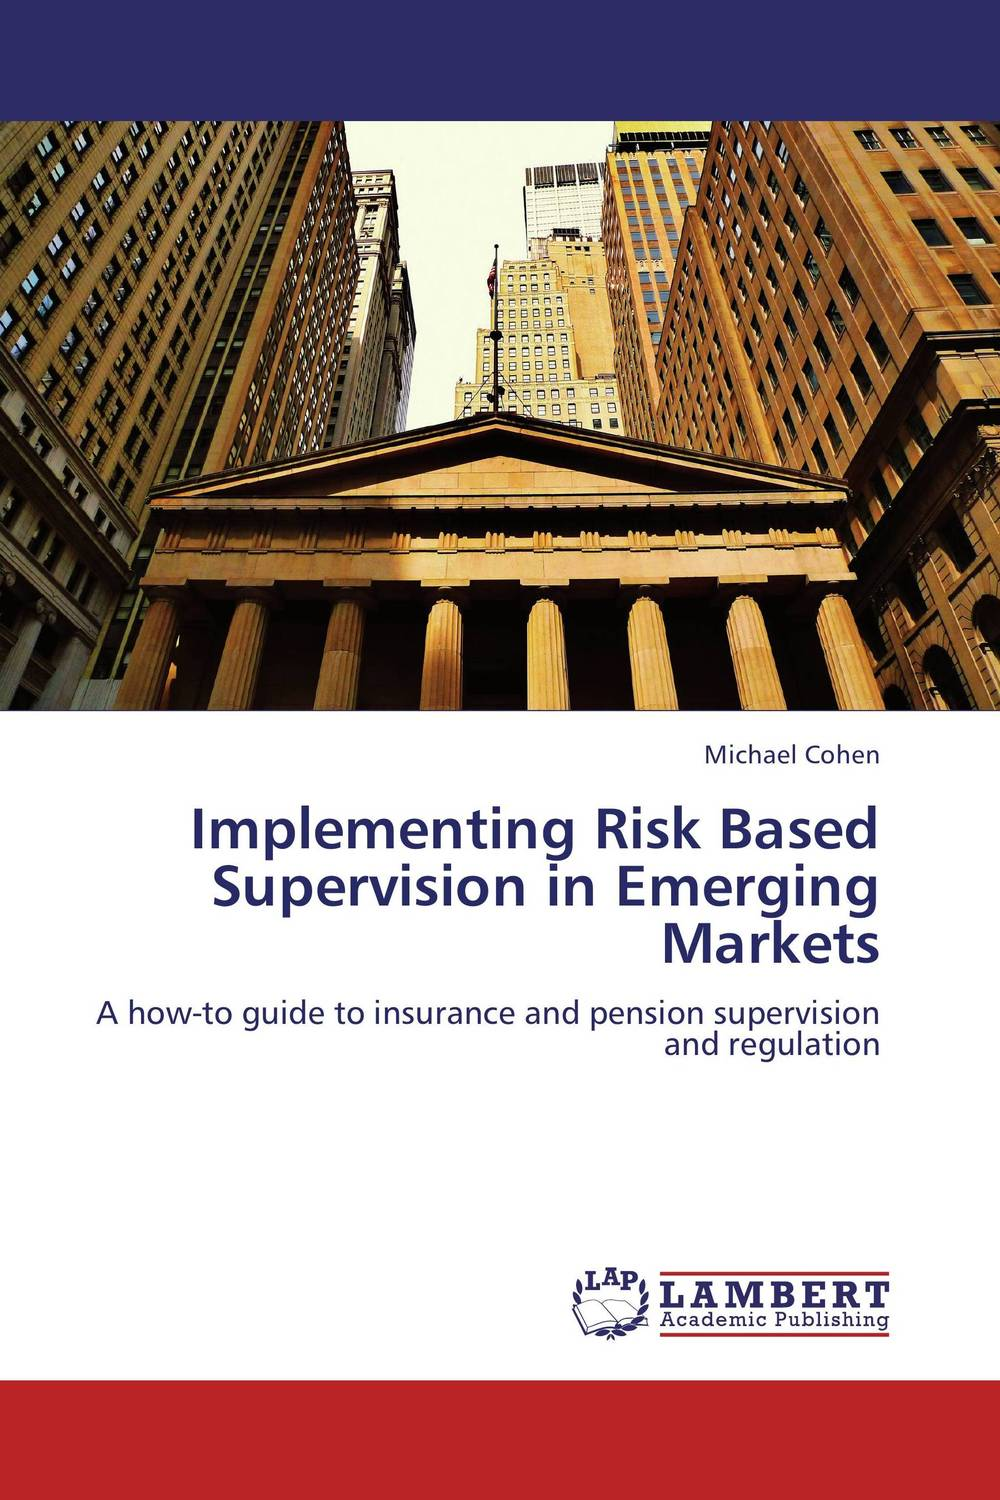 Implementing Risk Based Supervision in Emerging Markets